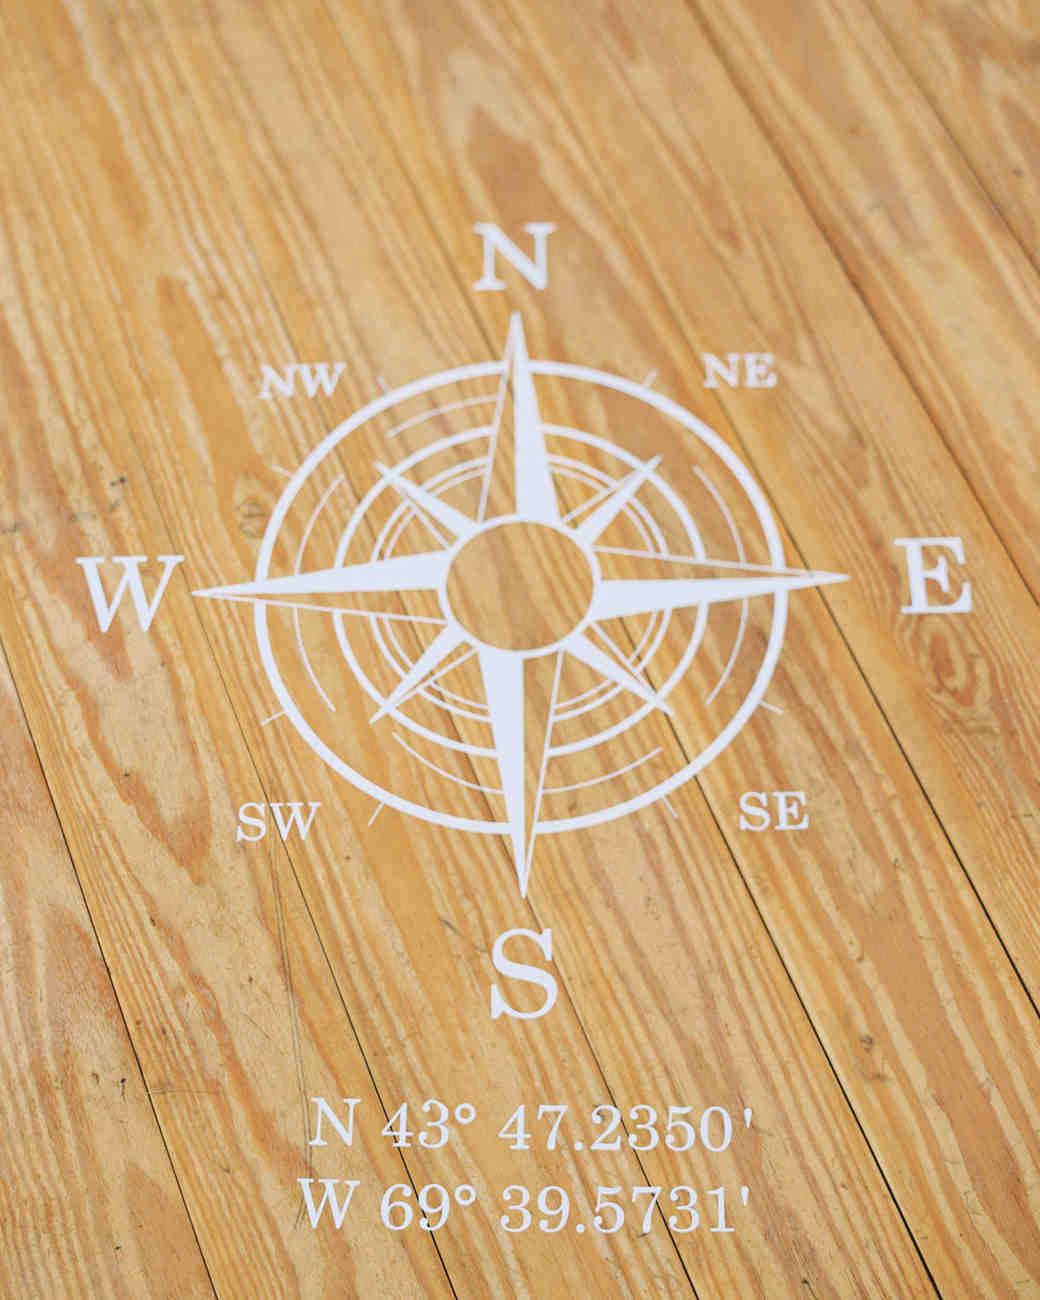 josh-matt-wedding-maine-compass-decal-26-s112061.jpg